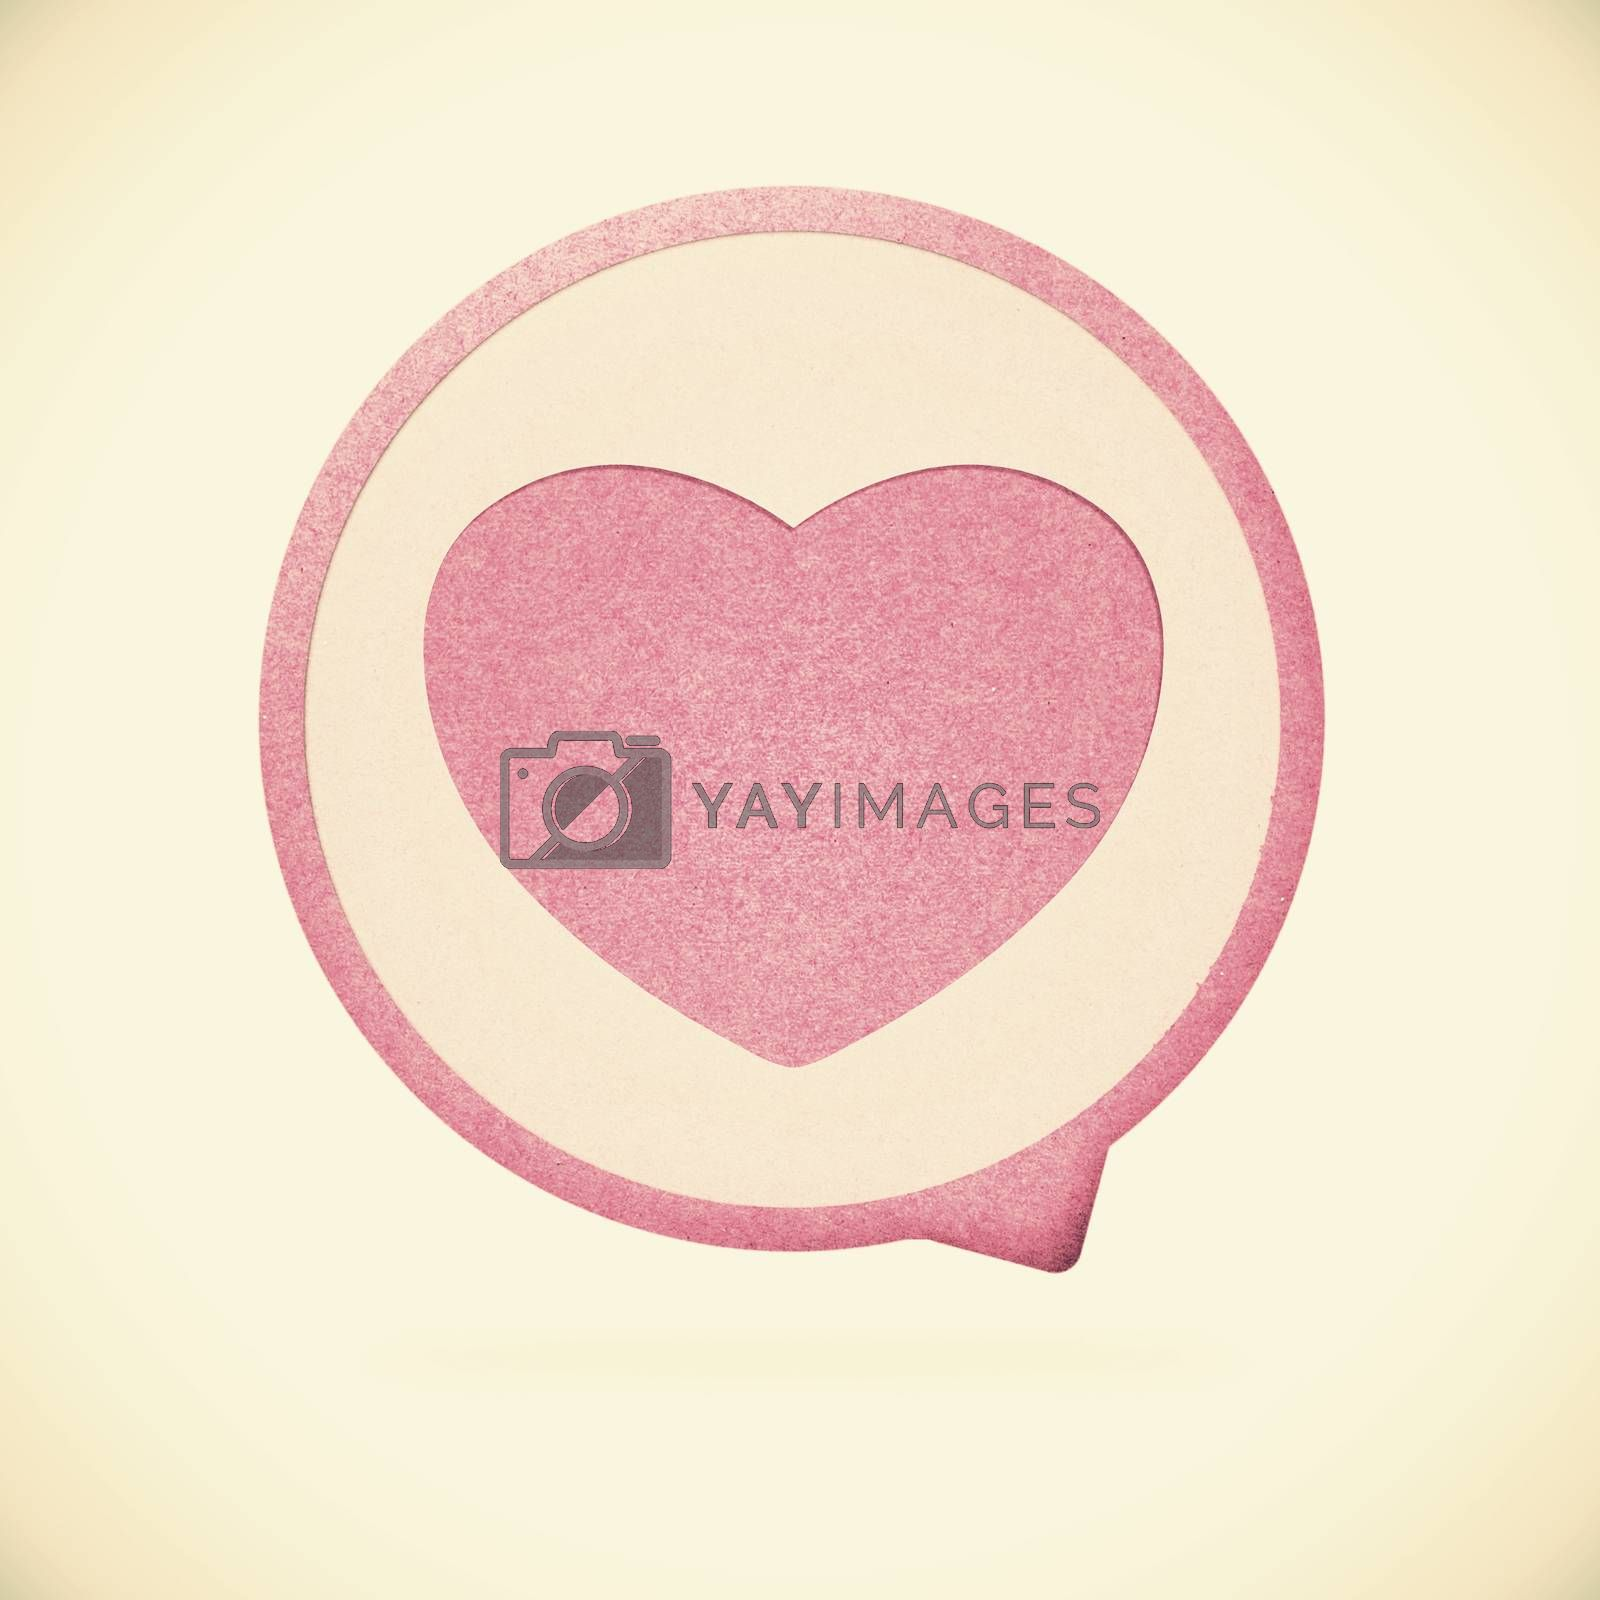 Heart tag recycled paper on vintage tone  background by jakgree